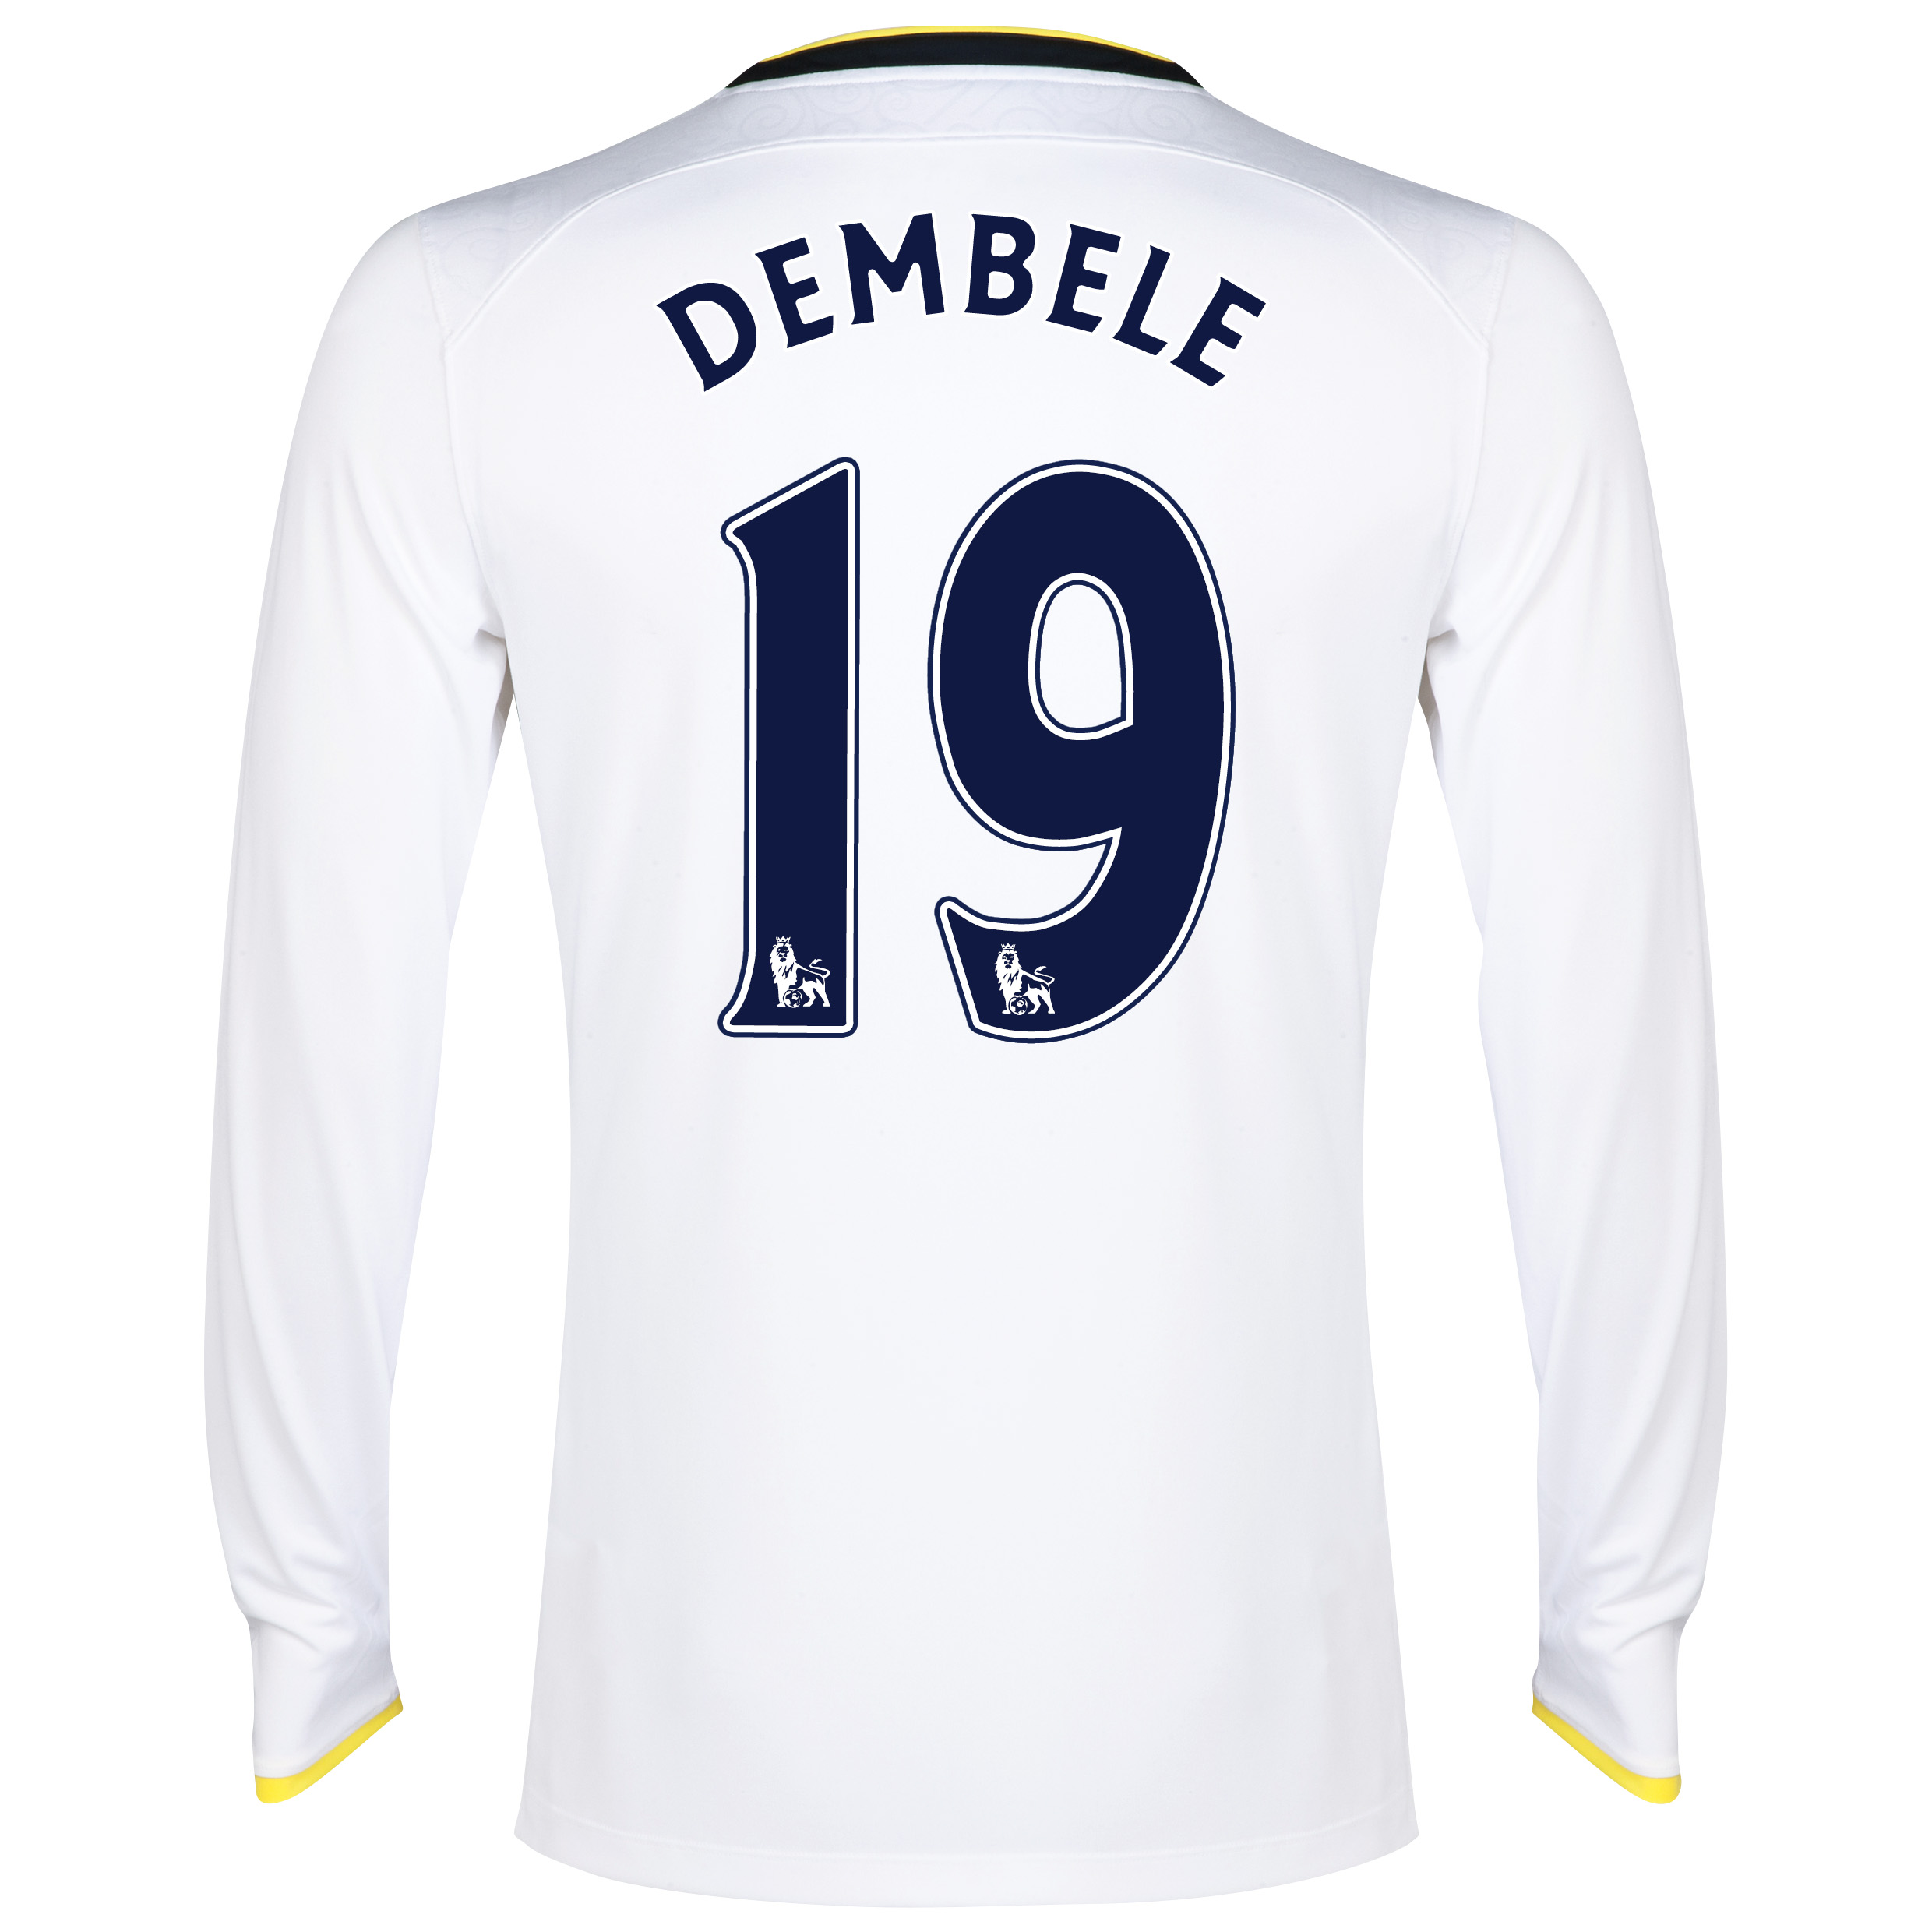 Tottenham Hotspur Home Shirt 2014/15 - Long Sleeve with Dembele 19 printing